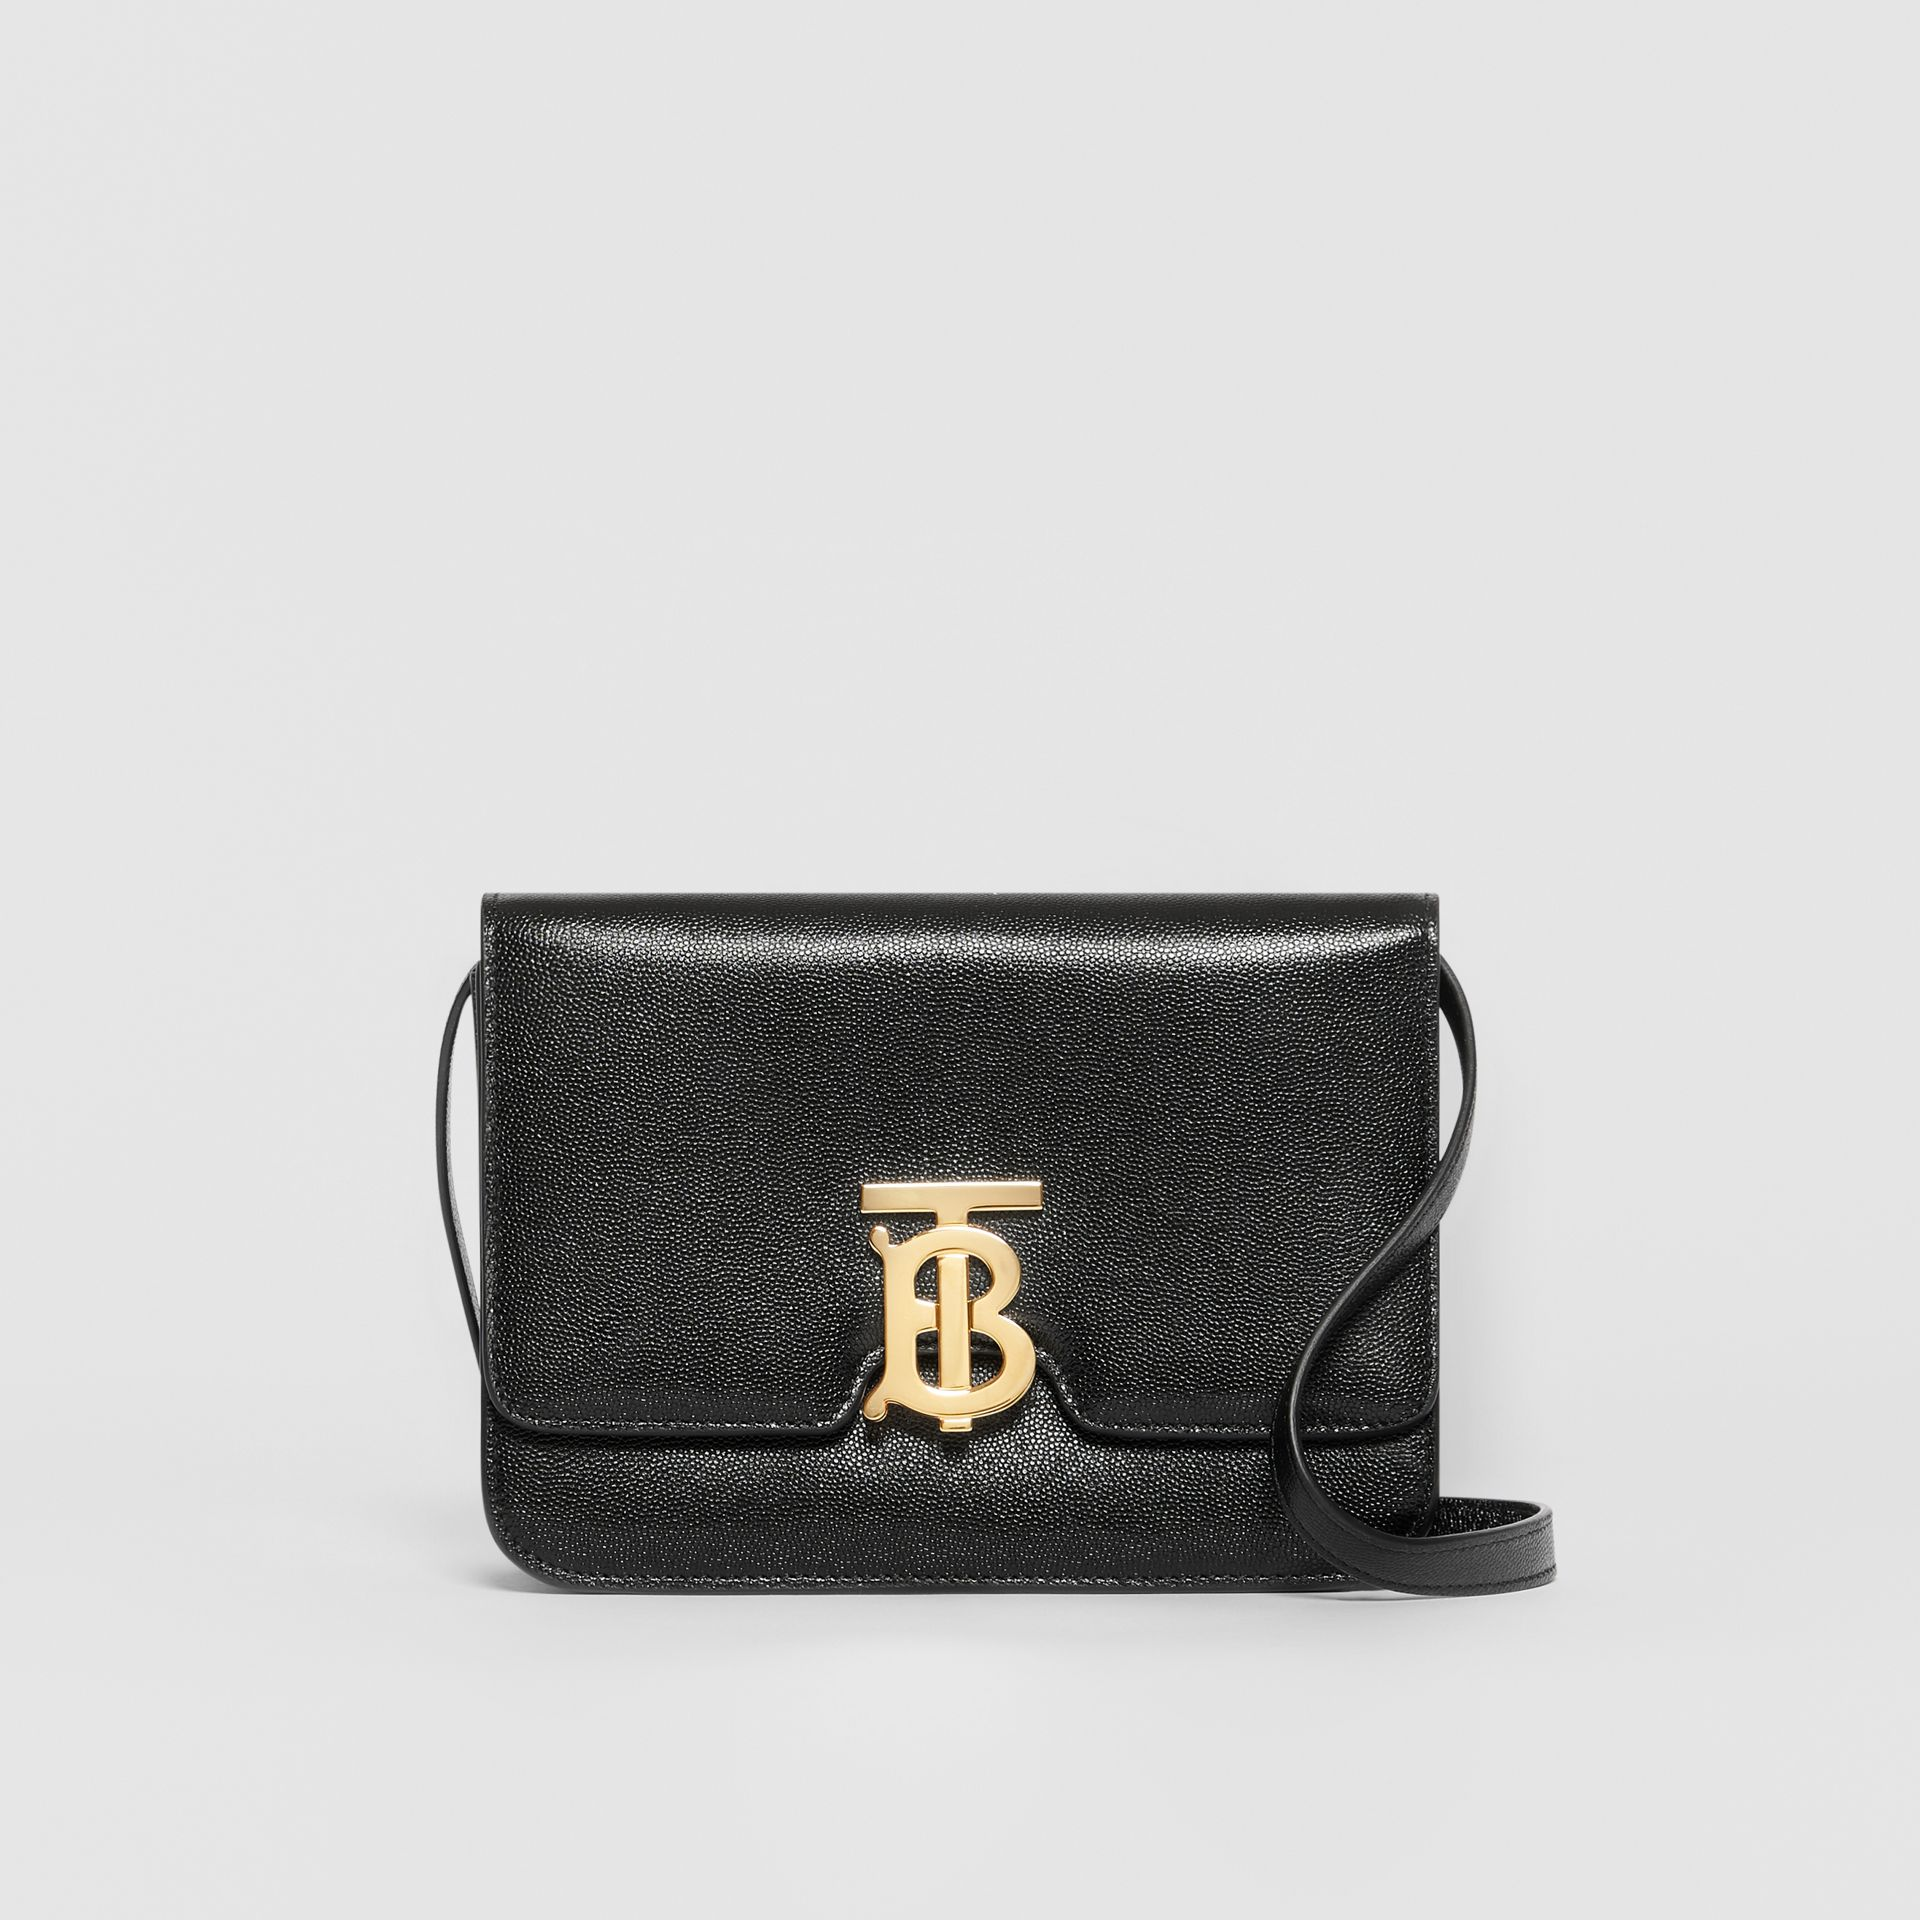 Small Grainy Leather TB Bag in Black - Women | Burberry - gallery image 0